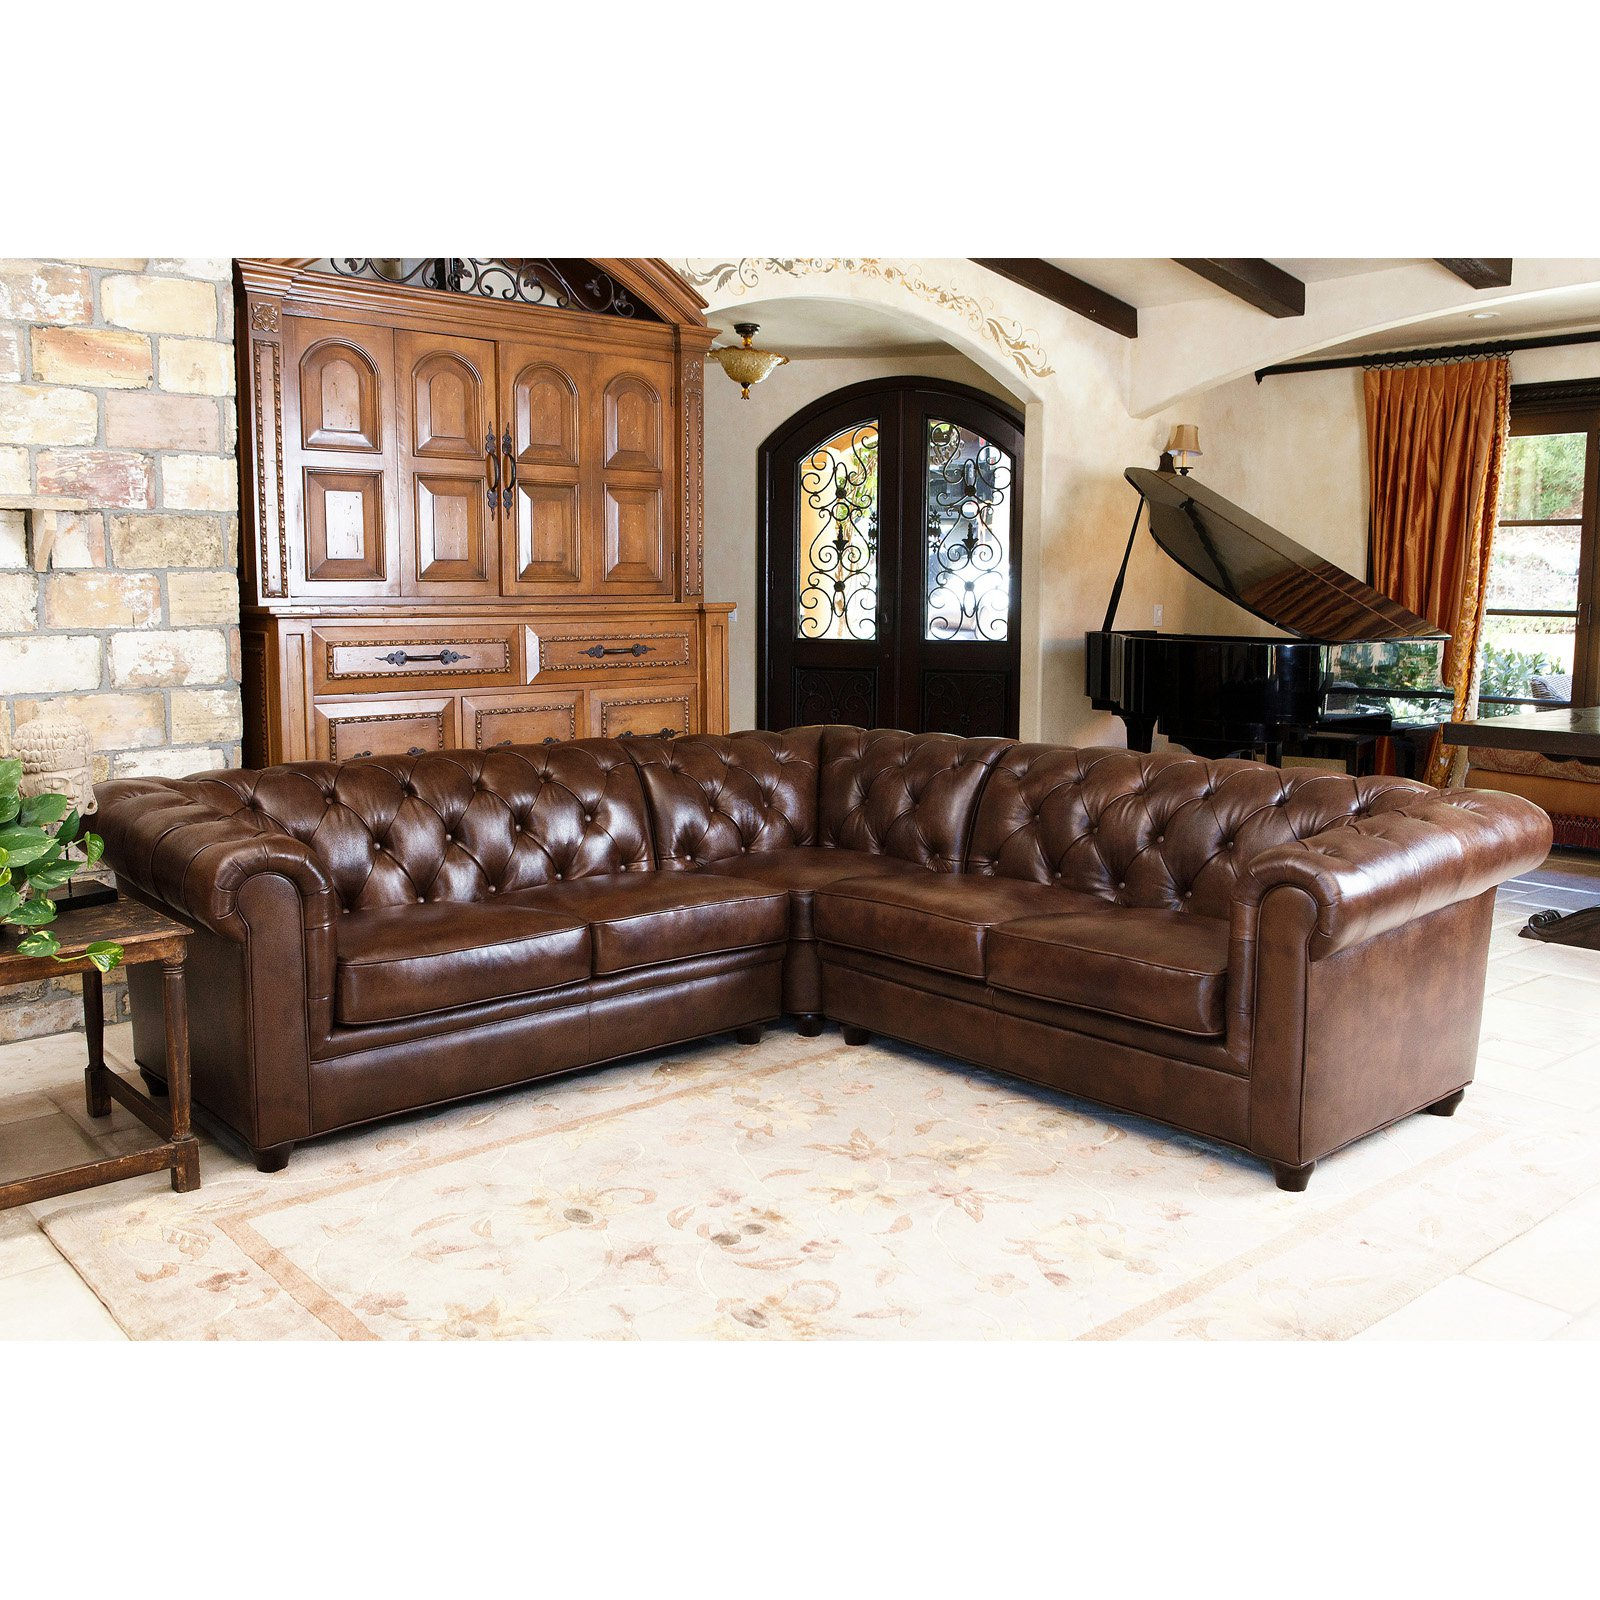 Tuscany Leather Sofa Set Abbyson Tuscan Tufted Top Grain